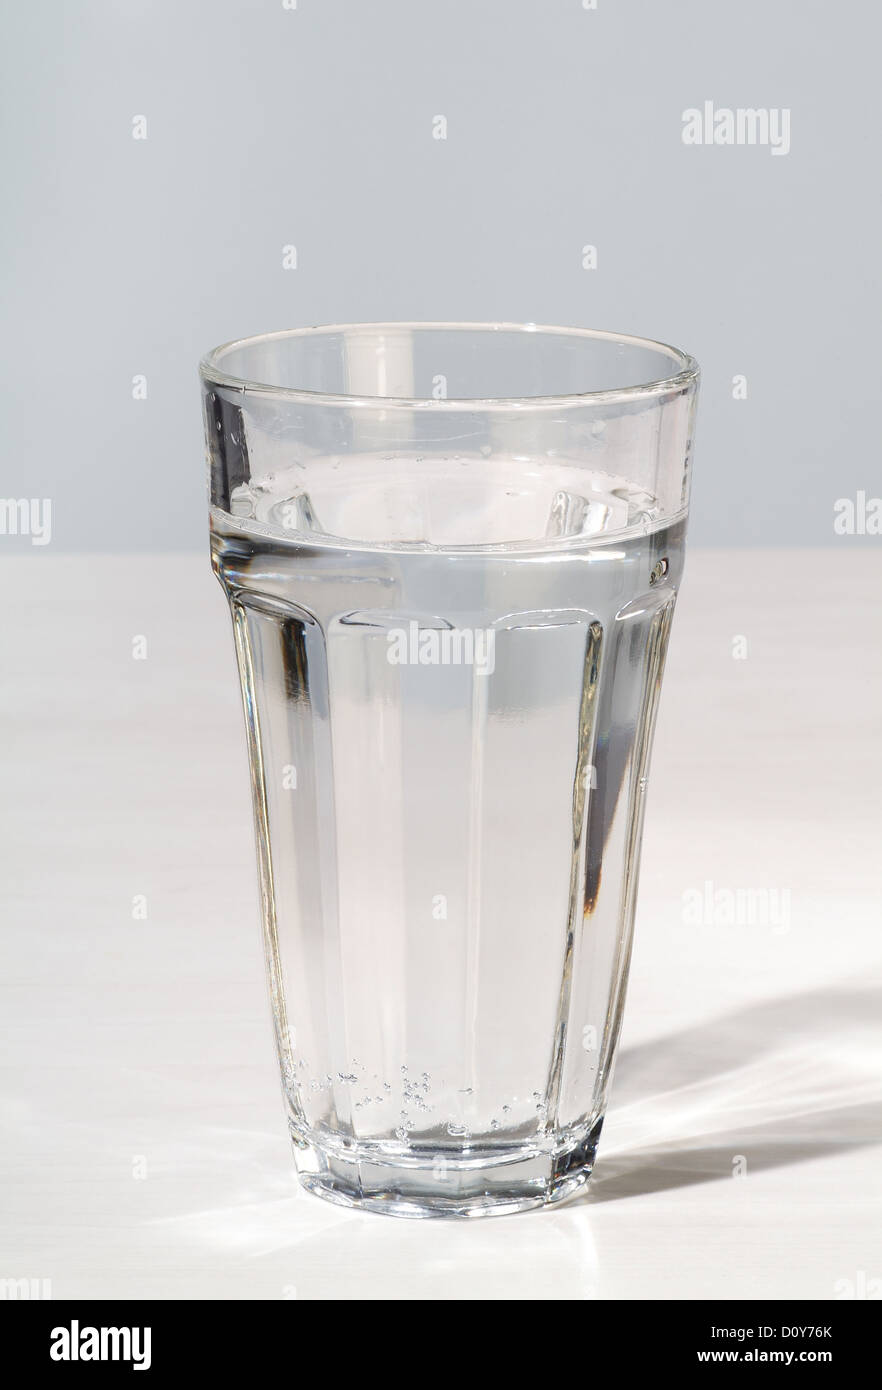 Hamburg, Germany, a glass of water - Stock Image